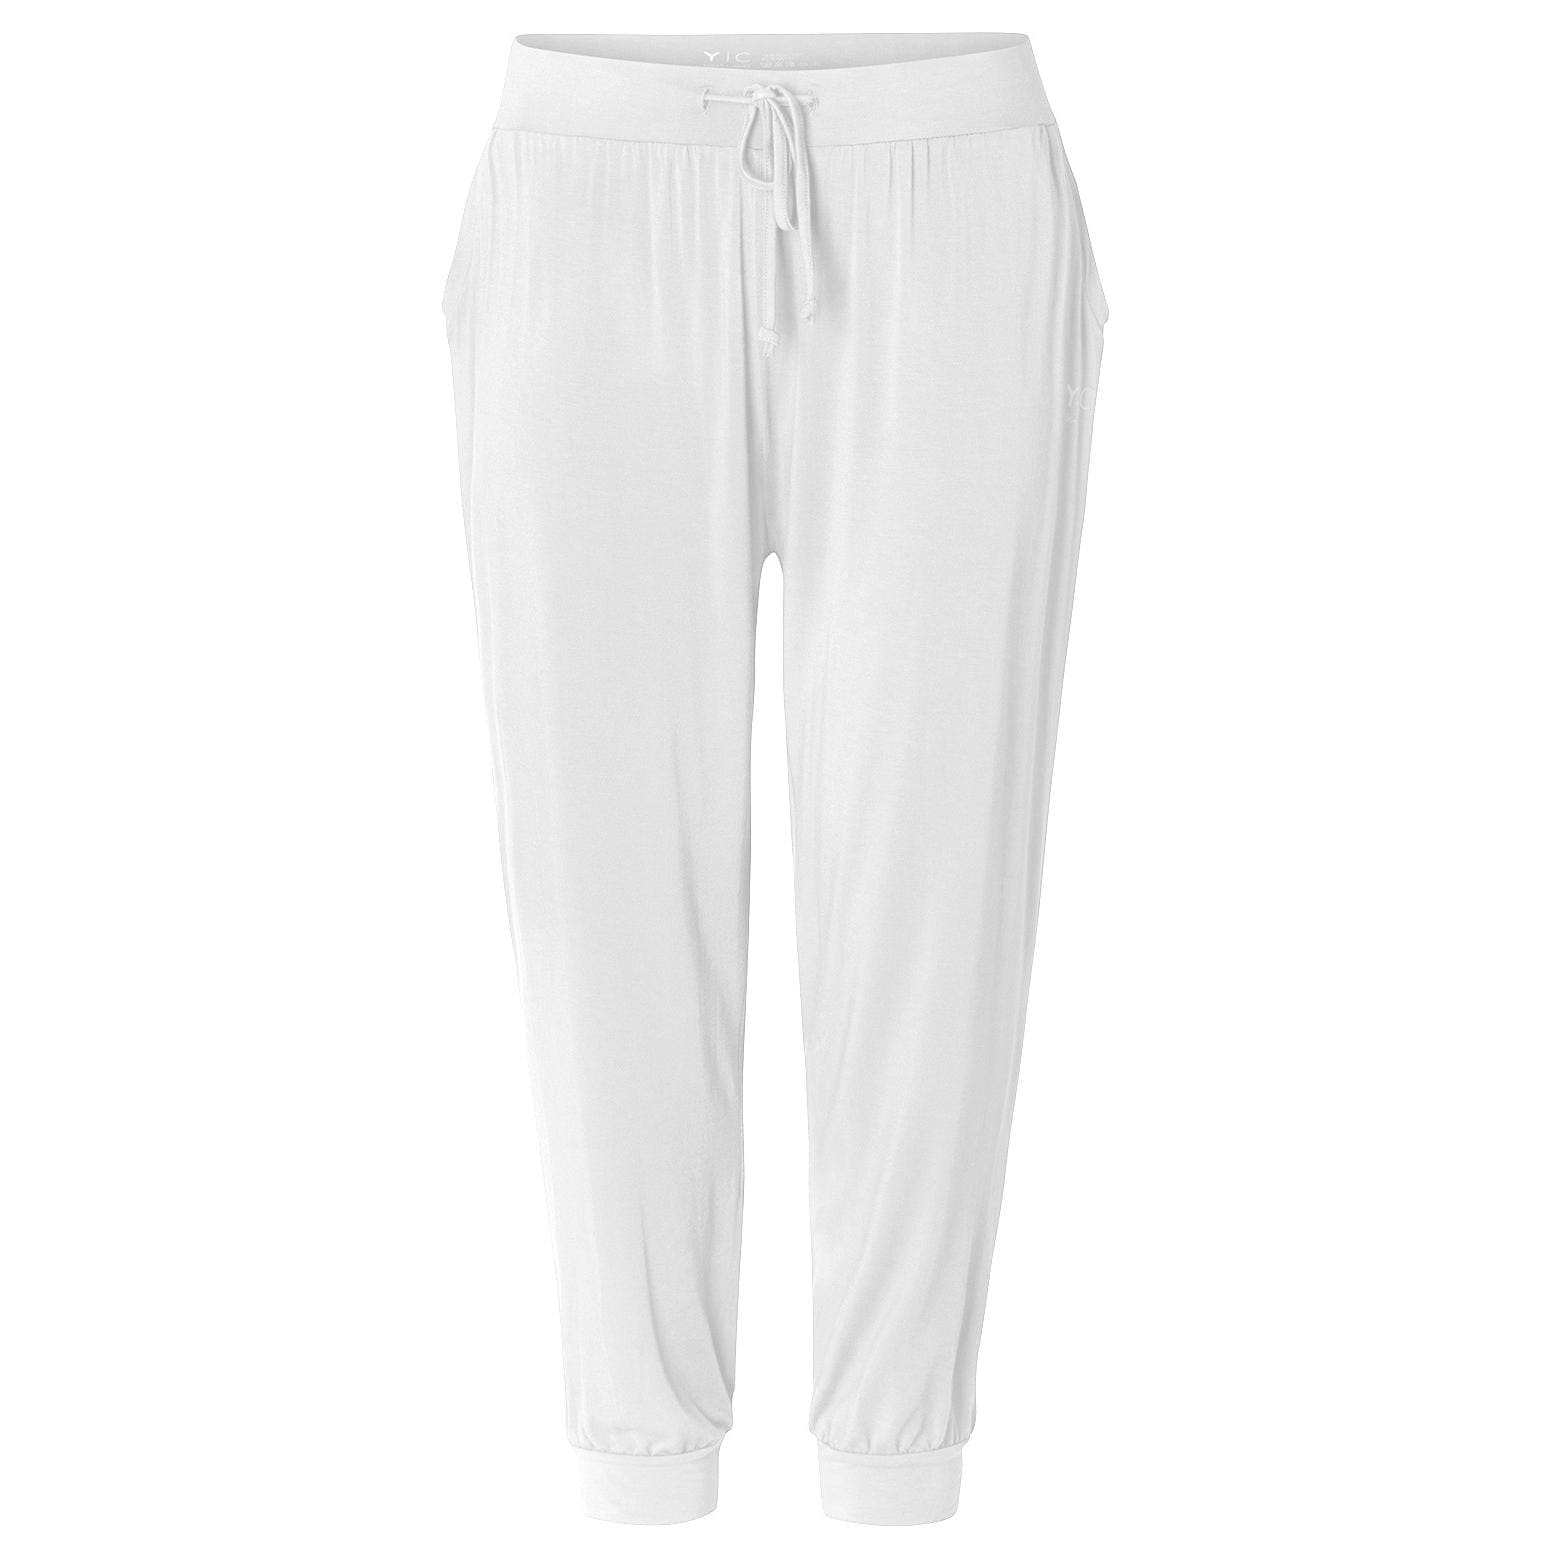 Curare Yoga Curves Collection Long Pants relaxed white